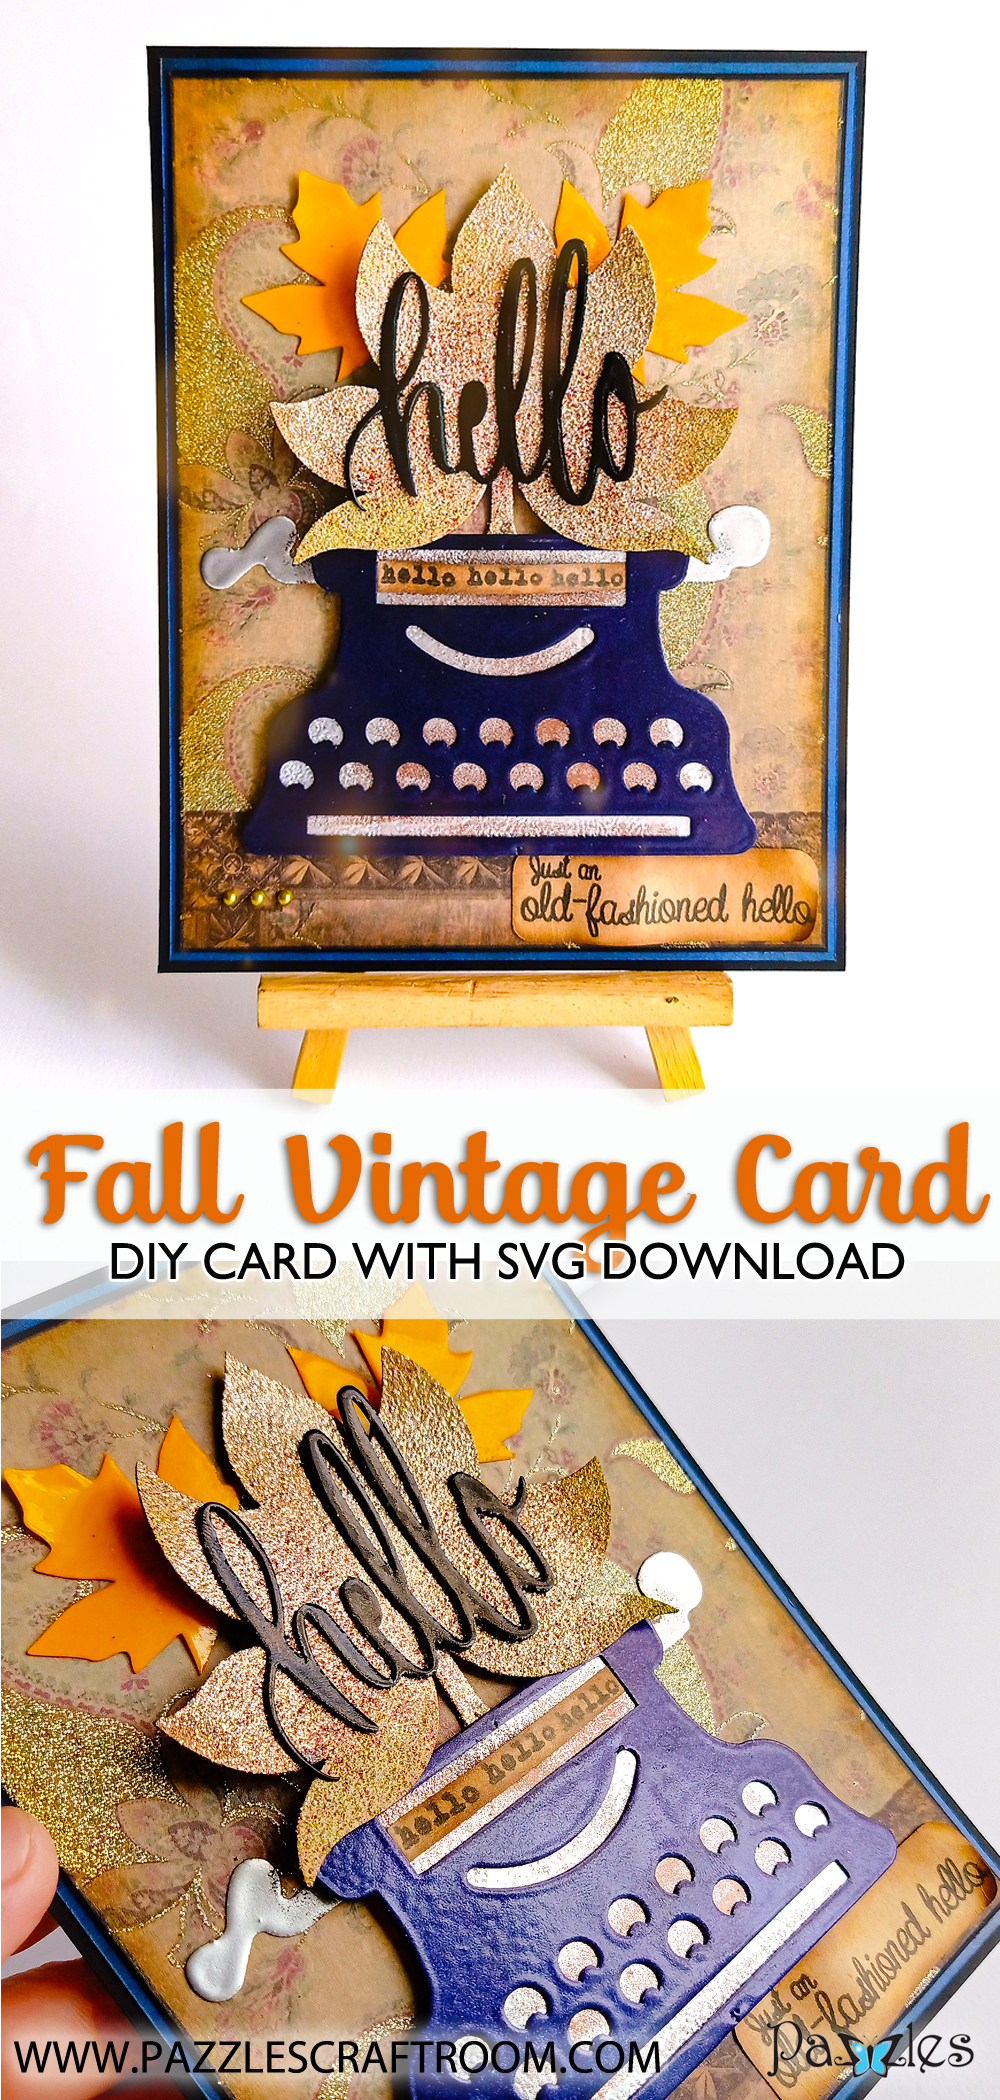 Pazzles DIY Autumn Vintage Typewriter Card with instant SVG download. Compatible with all major electronic cutters including Pazzles Inspiration, Cricut, and Silhouette Cameo. Design by Zahraa Darweesh.